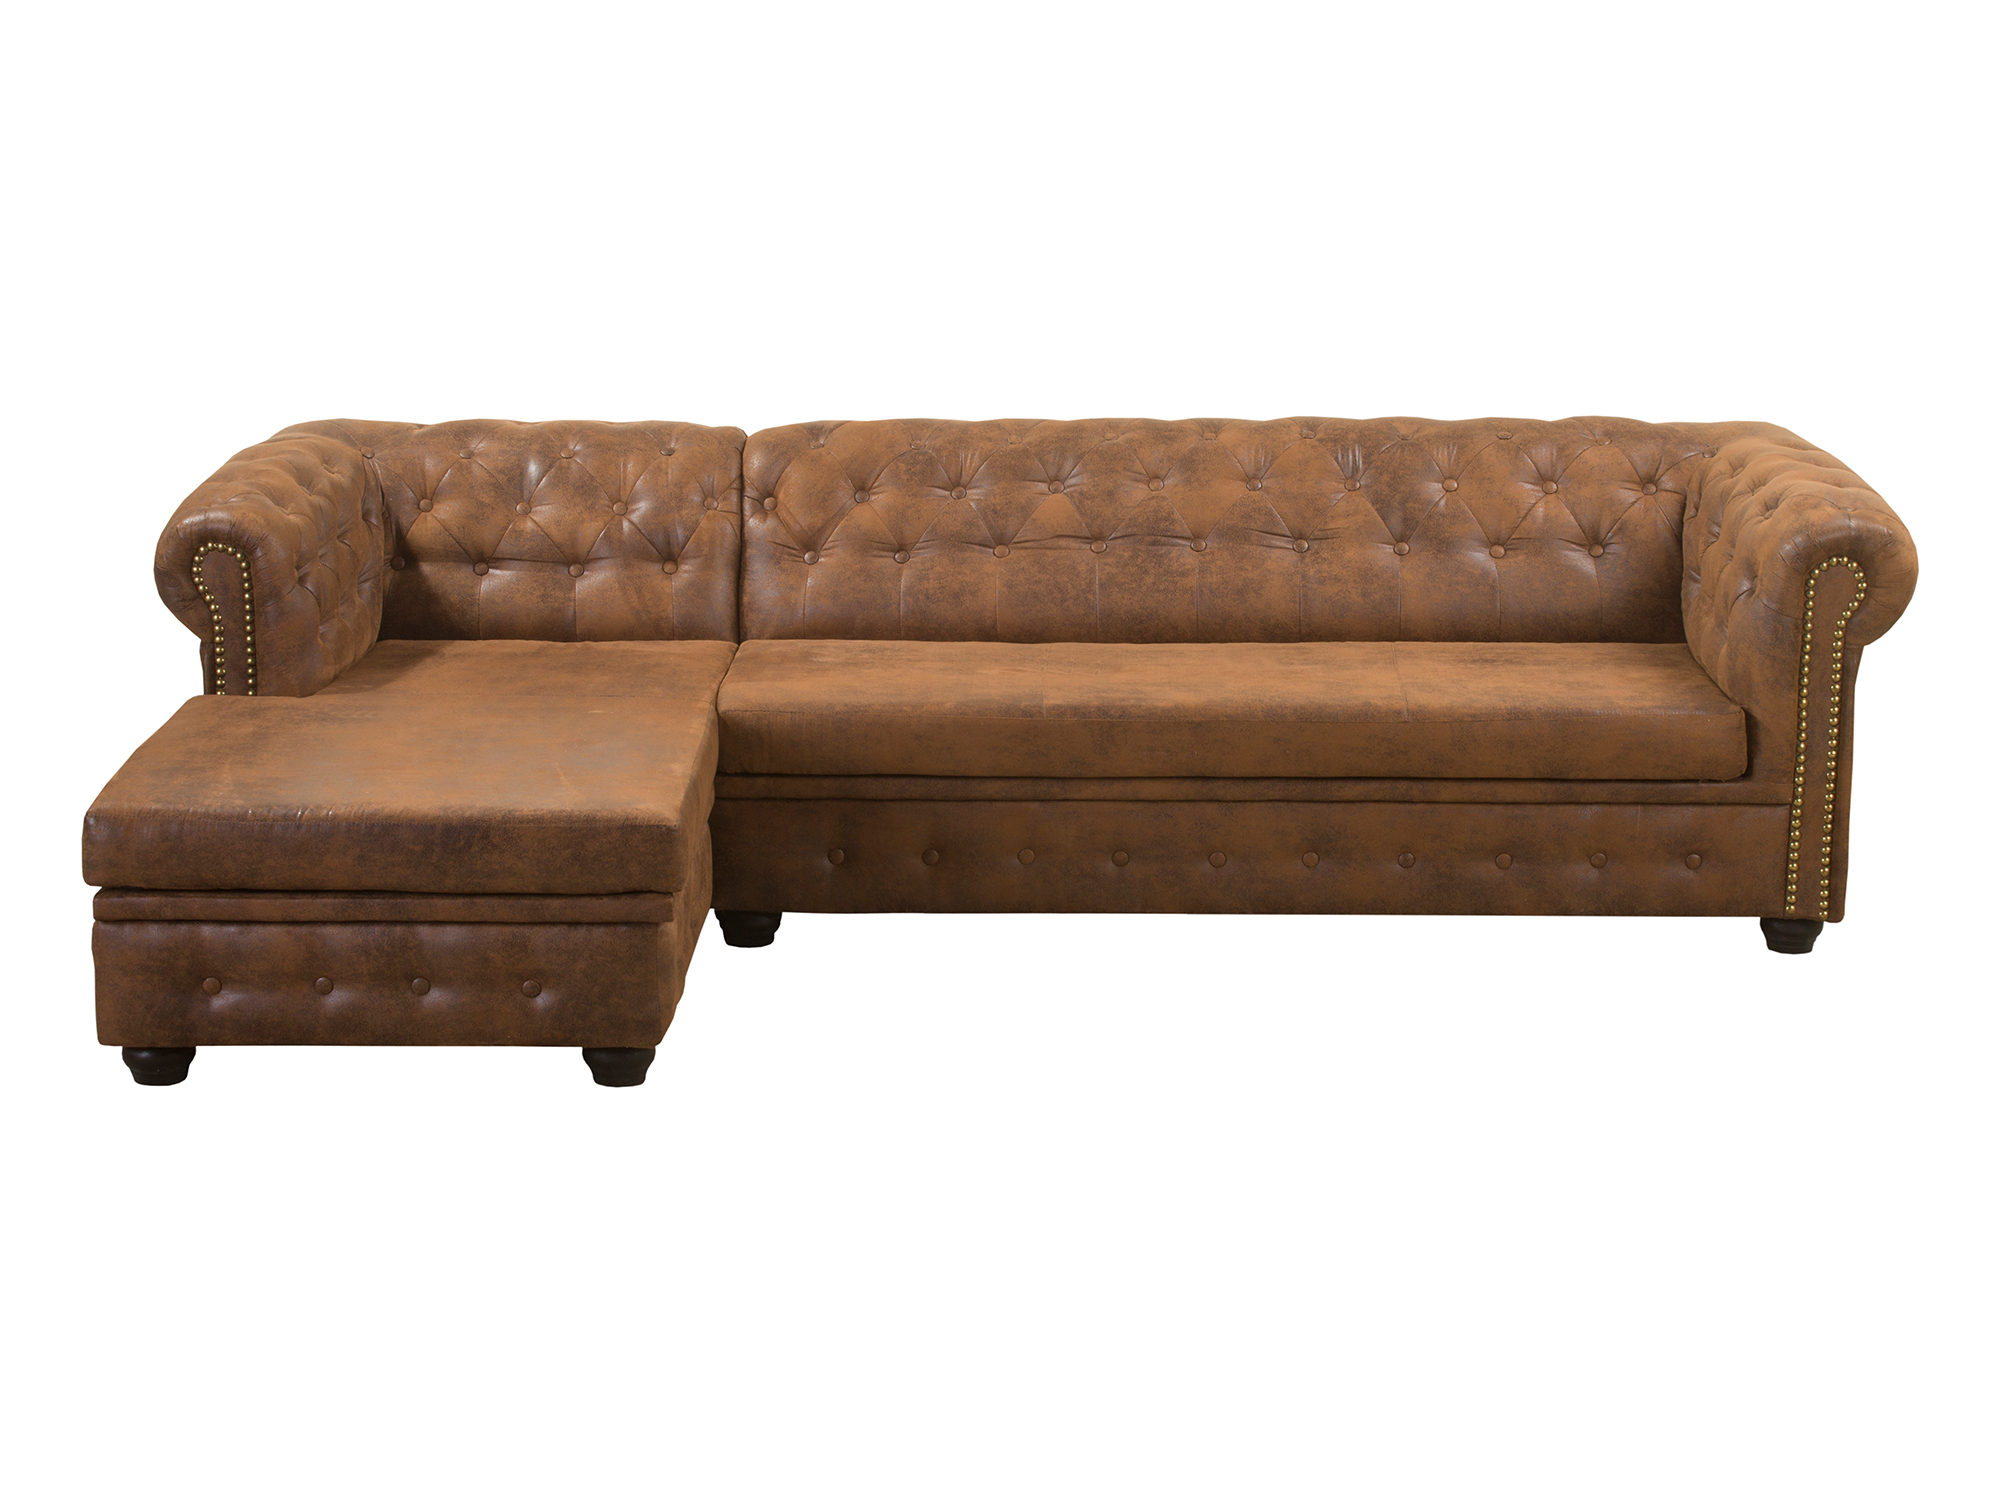 Chesterfield ecksofa mit ottomane gobi braun links for Ecksofa ottomane